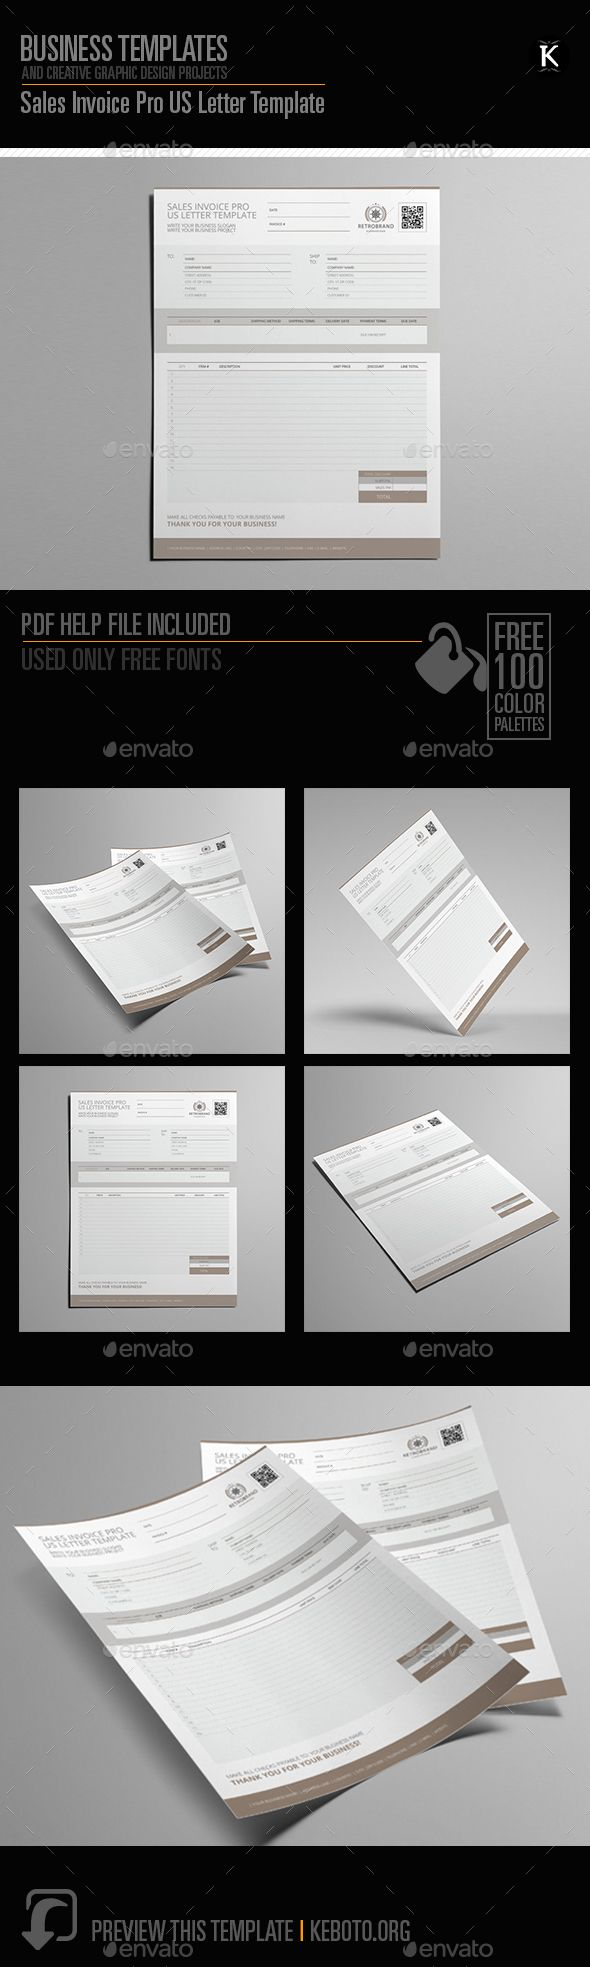 Sales Invoice Pro Us Letter Template Graphic Design Templates Graphic Design Vector Icons Free